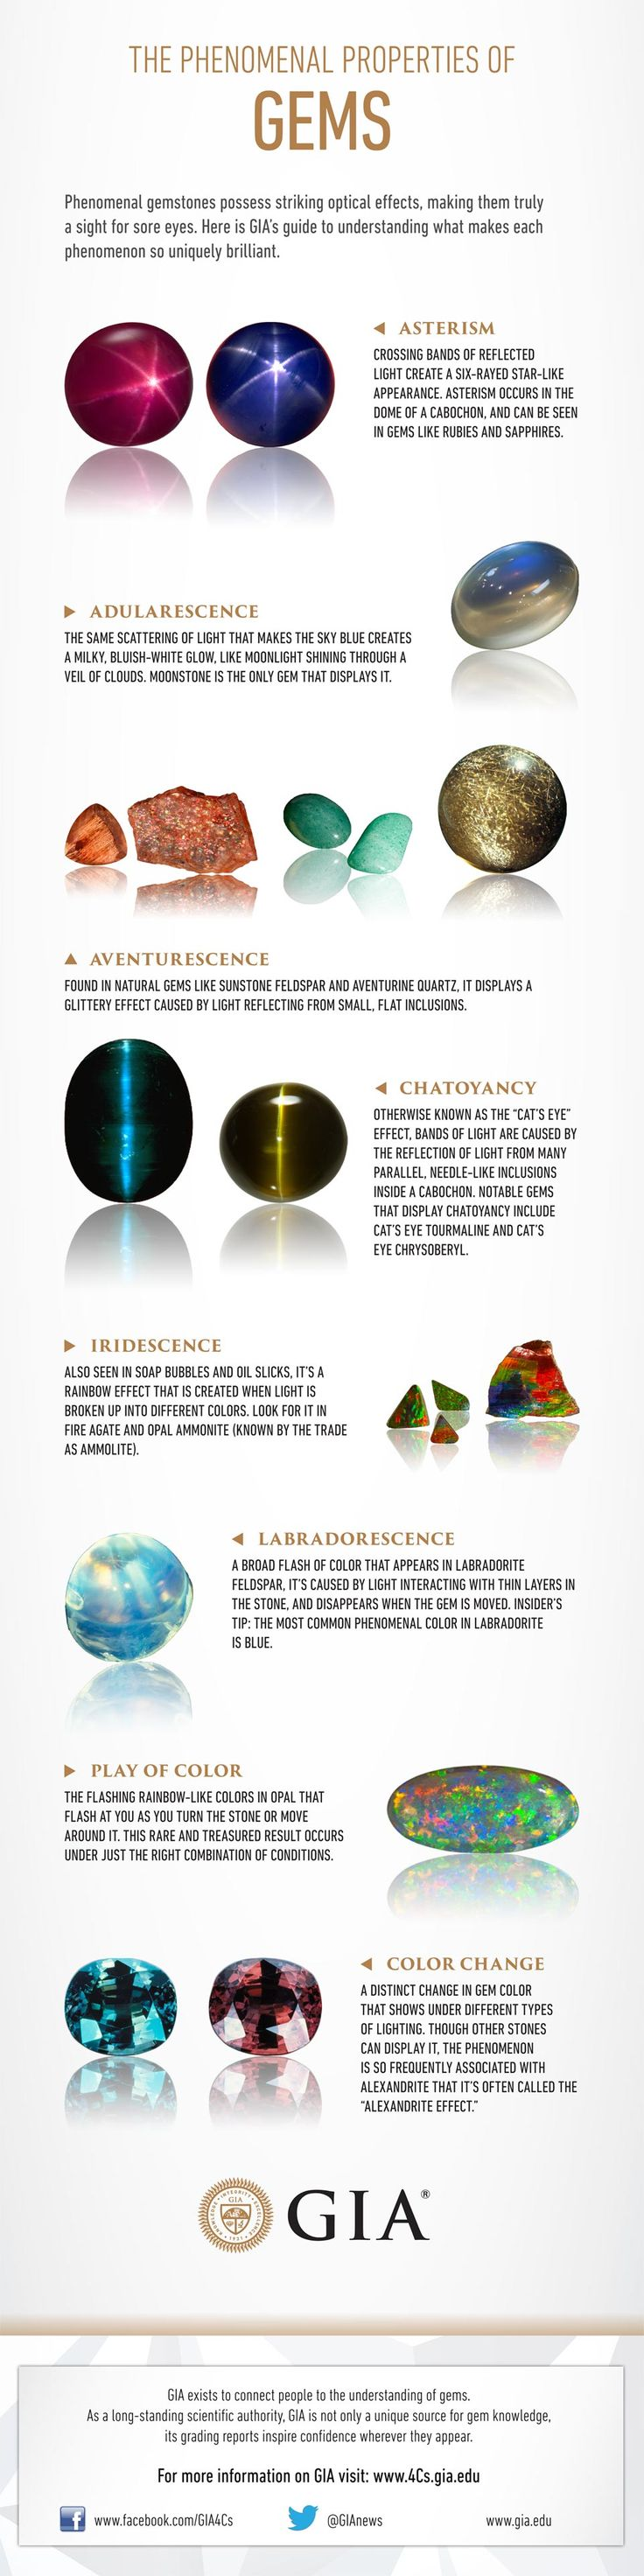 The Phenomenal Properties of Gems. GIA , thingofinterest~ A very nice explanation of the properties of gems and minerals.